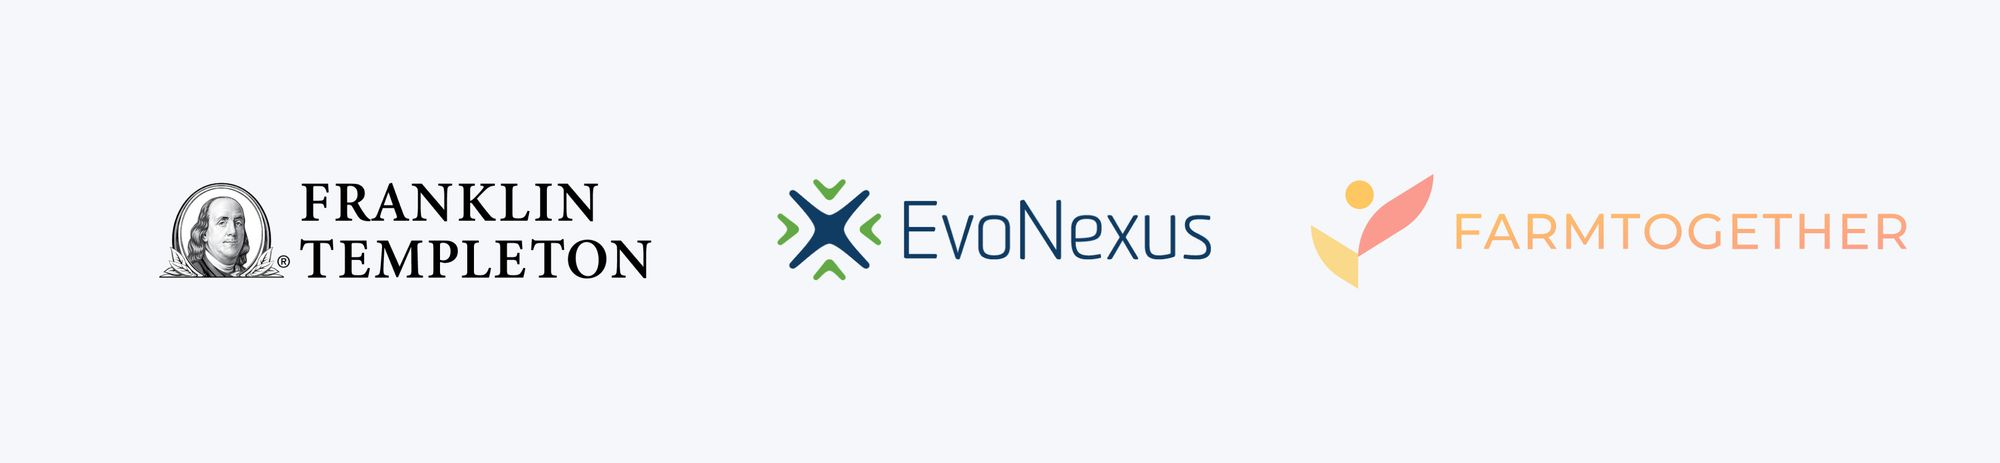 FarmTogether joined EvoNexus, Silicon Valley's fintech incubator